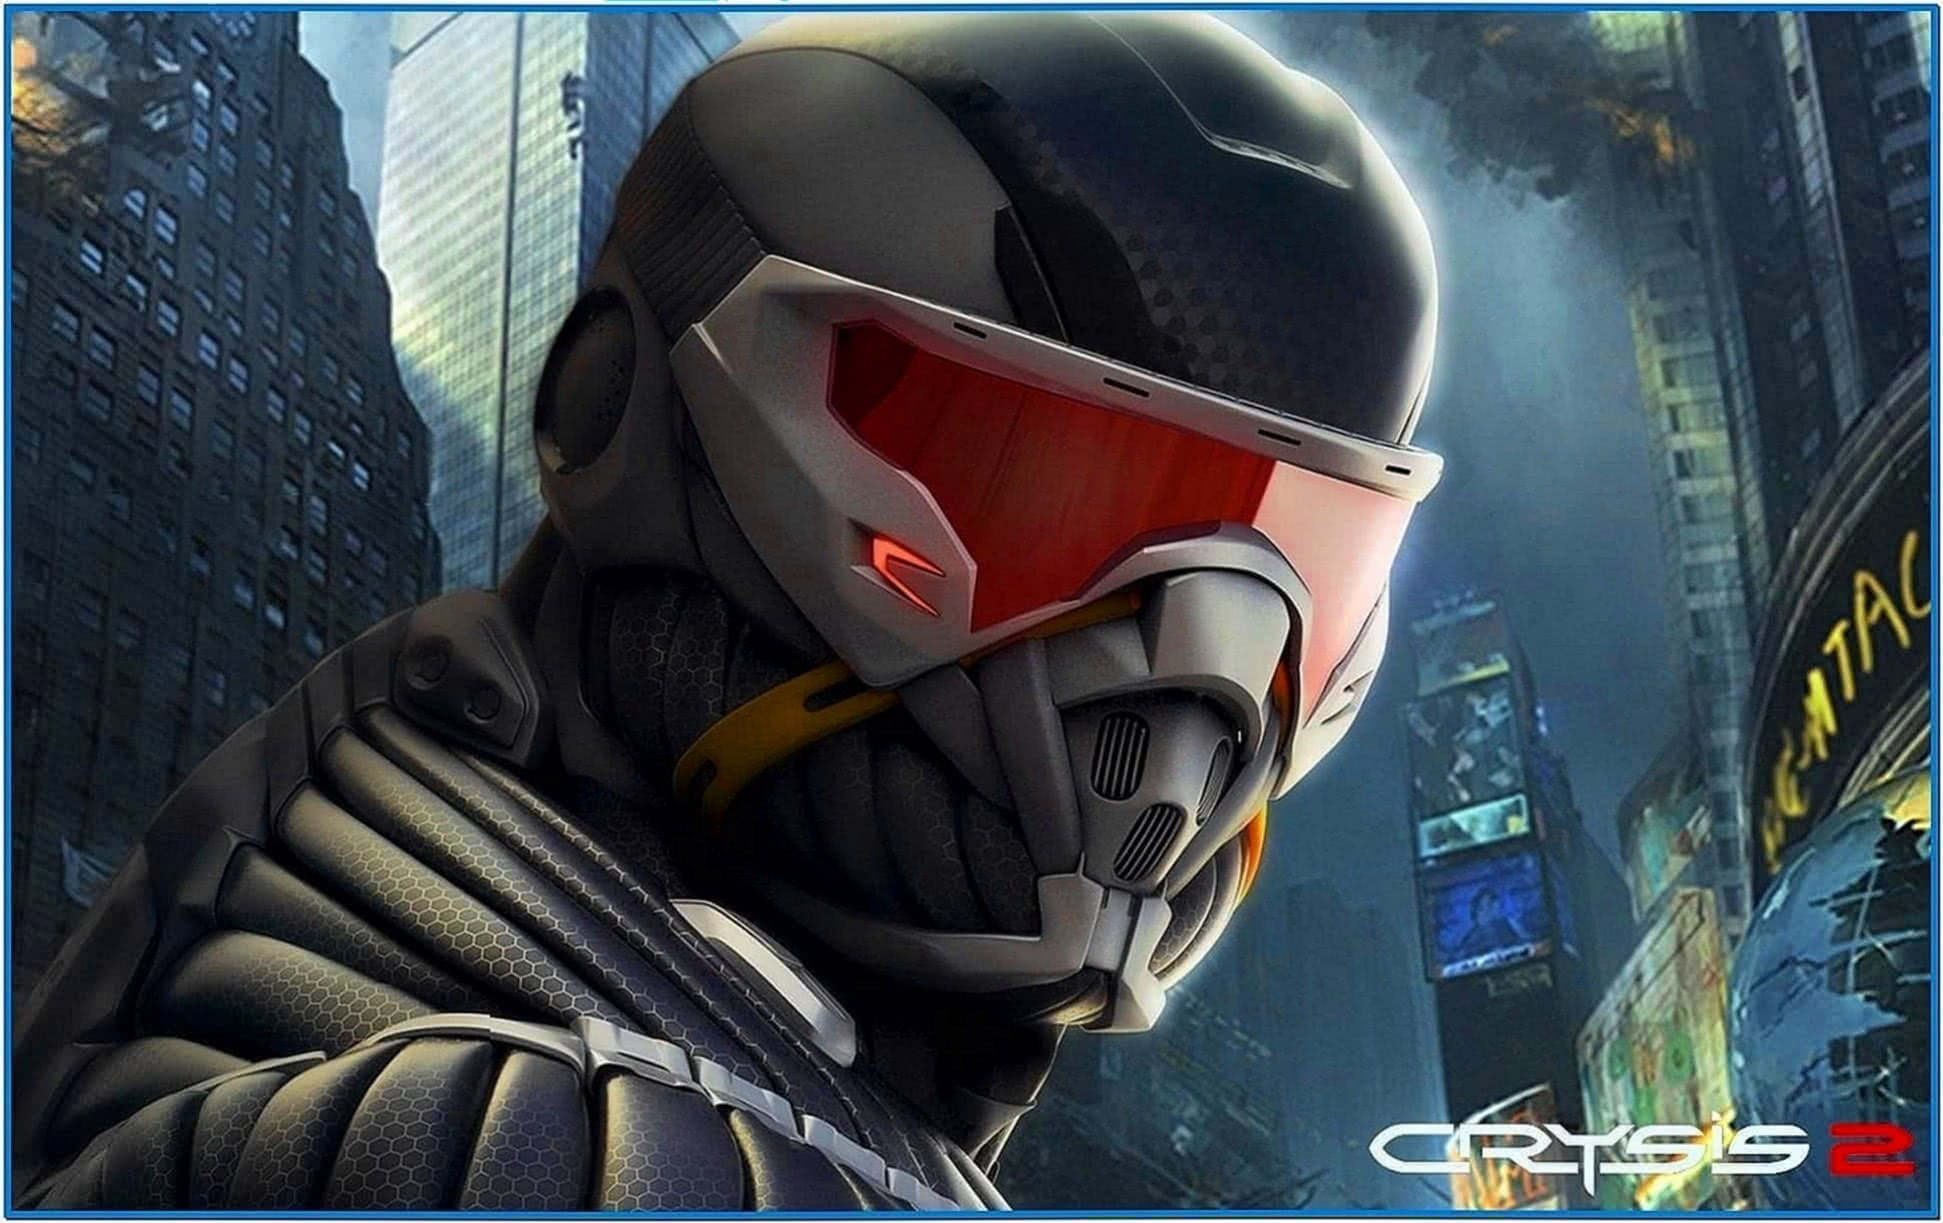 Crysis 2 Screensaver